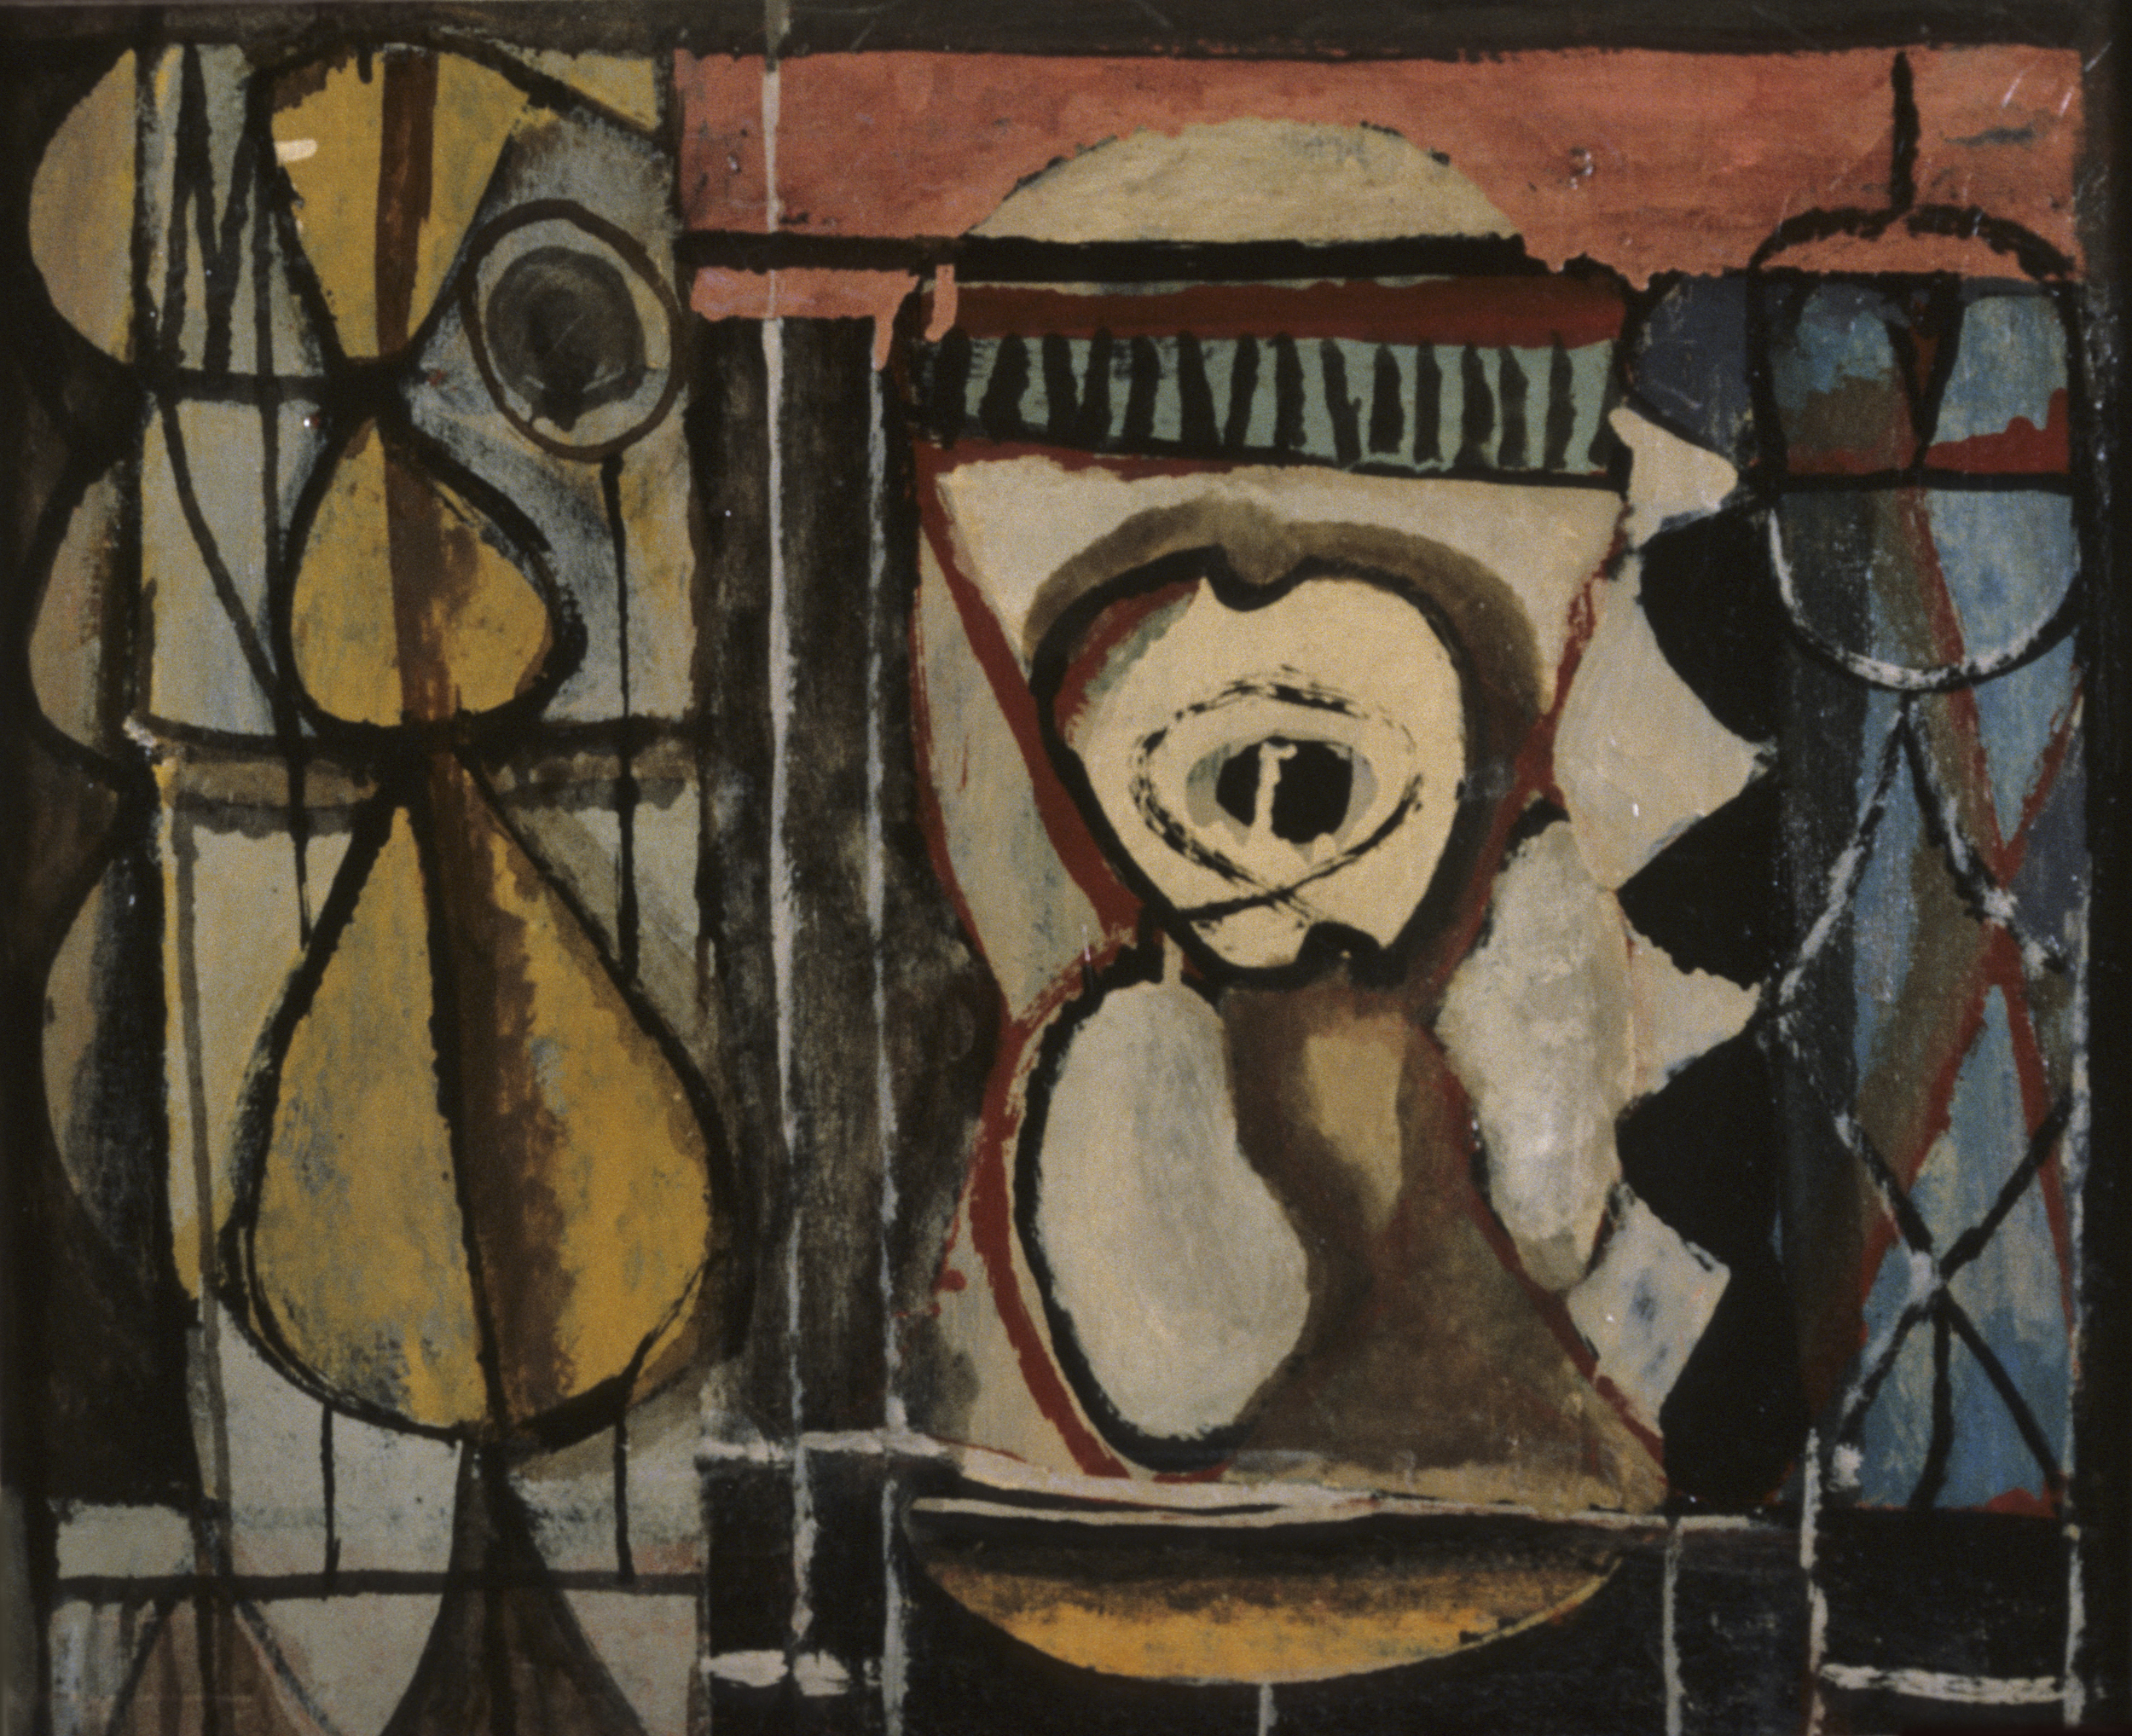 William Baziotes, The Schoolroom, 1943. Eli and Edythe Broad Art Museum, Gift of Clement Greenberg. © William Baziotes